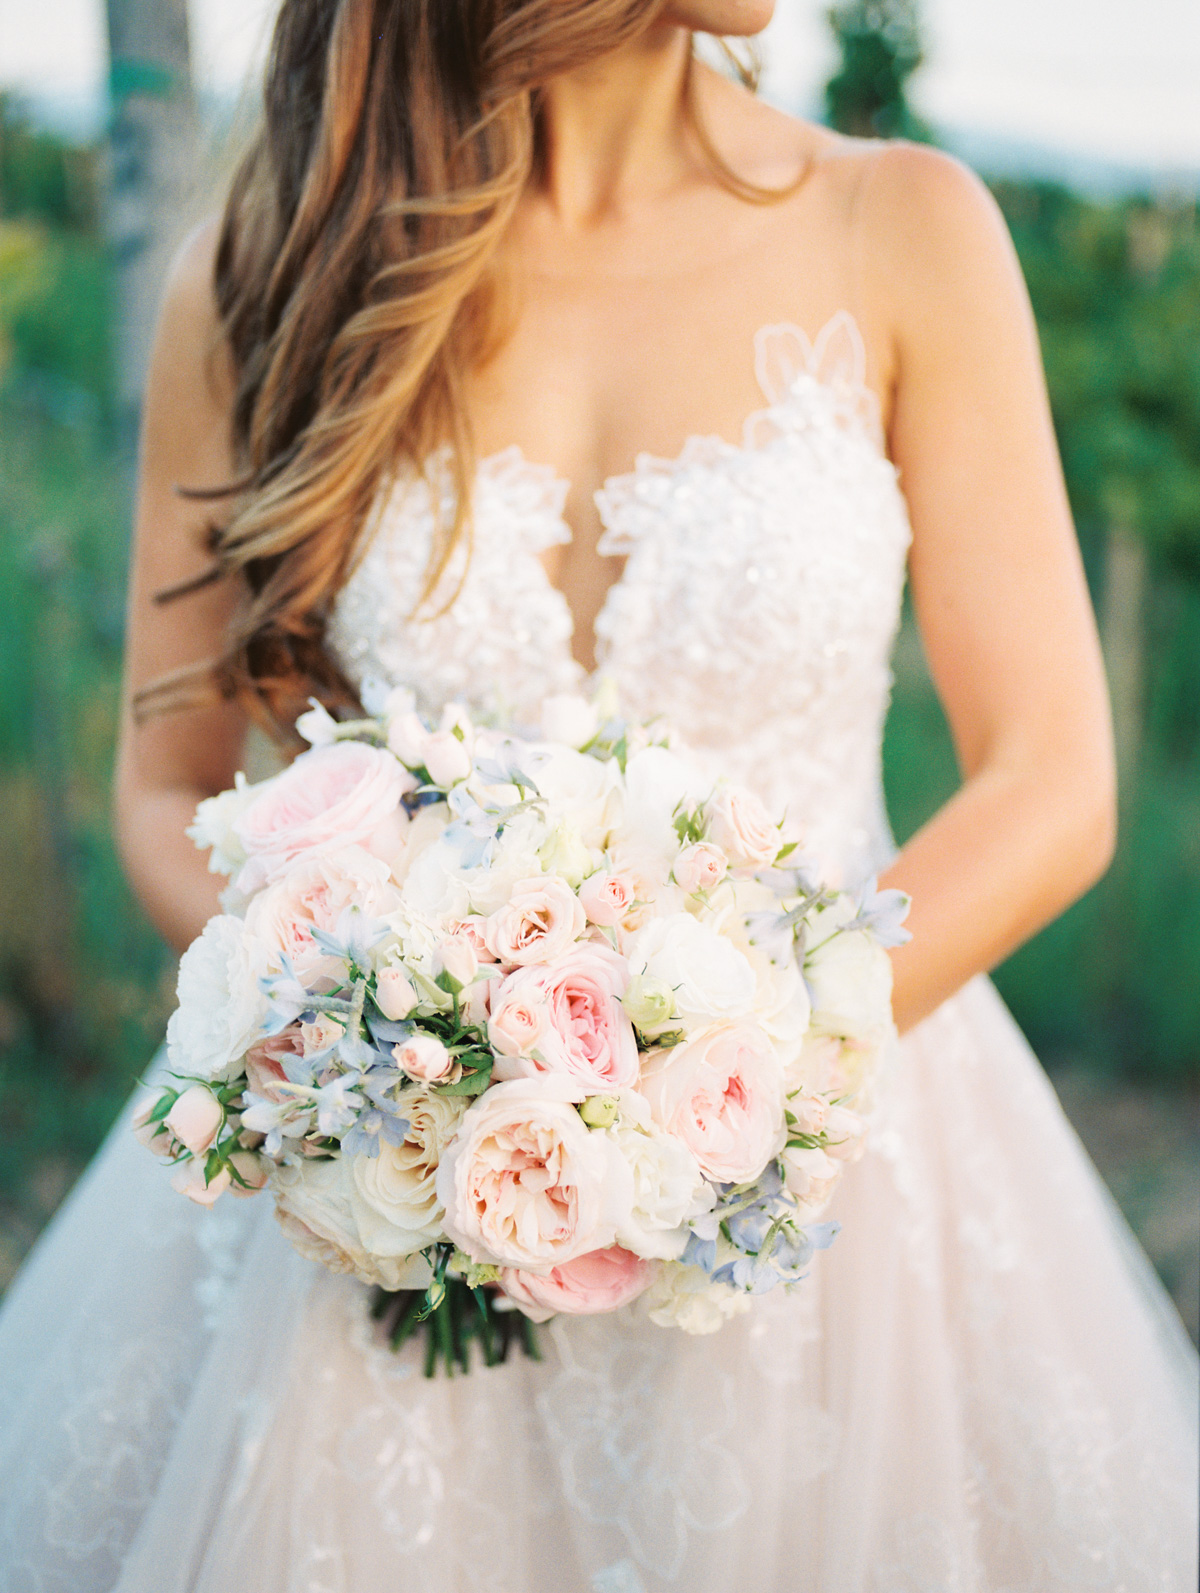 Gorgeous bridal bouquet by Soiree Design & Events |Harrison & Jocelyne's gorgeous Temecula wedding day at Wiens Family Cellars captured by Temecula wedding photographers Betsy & John